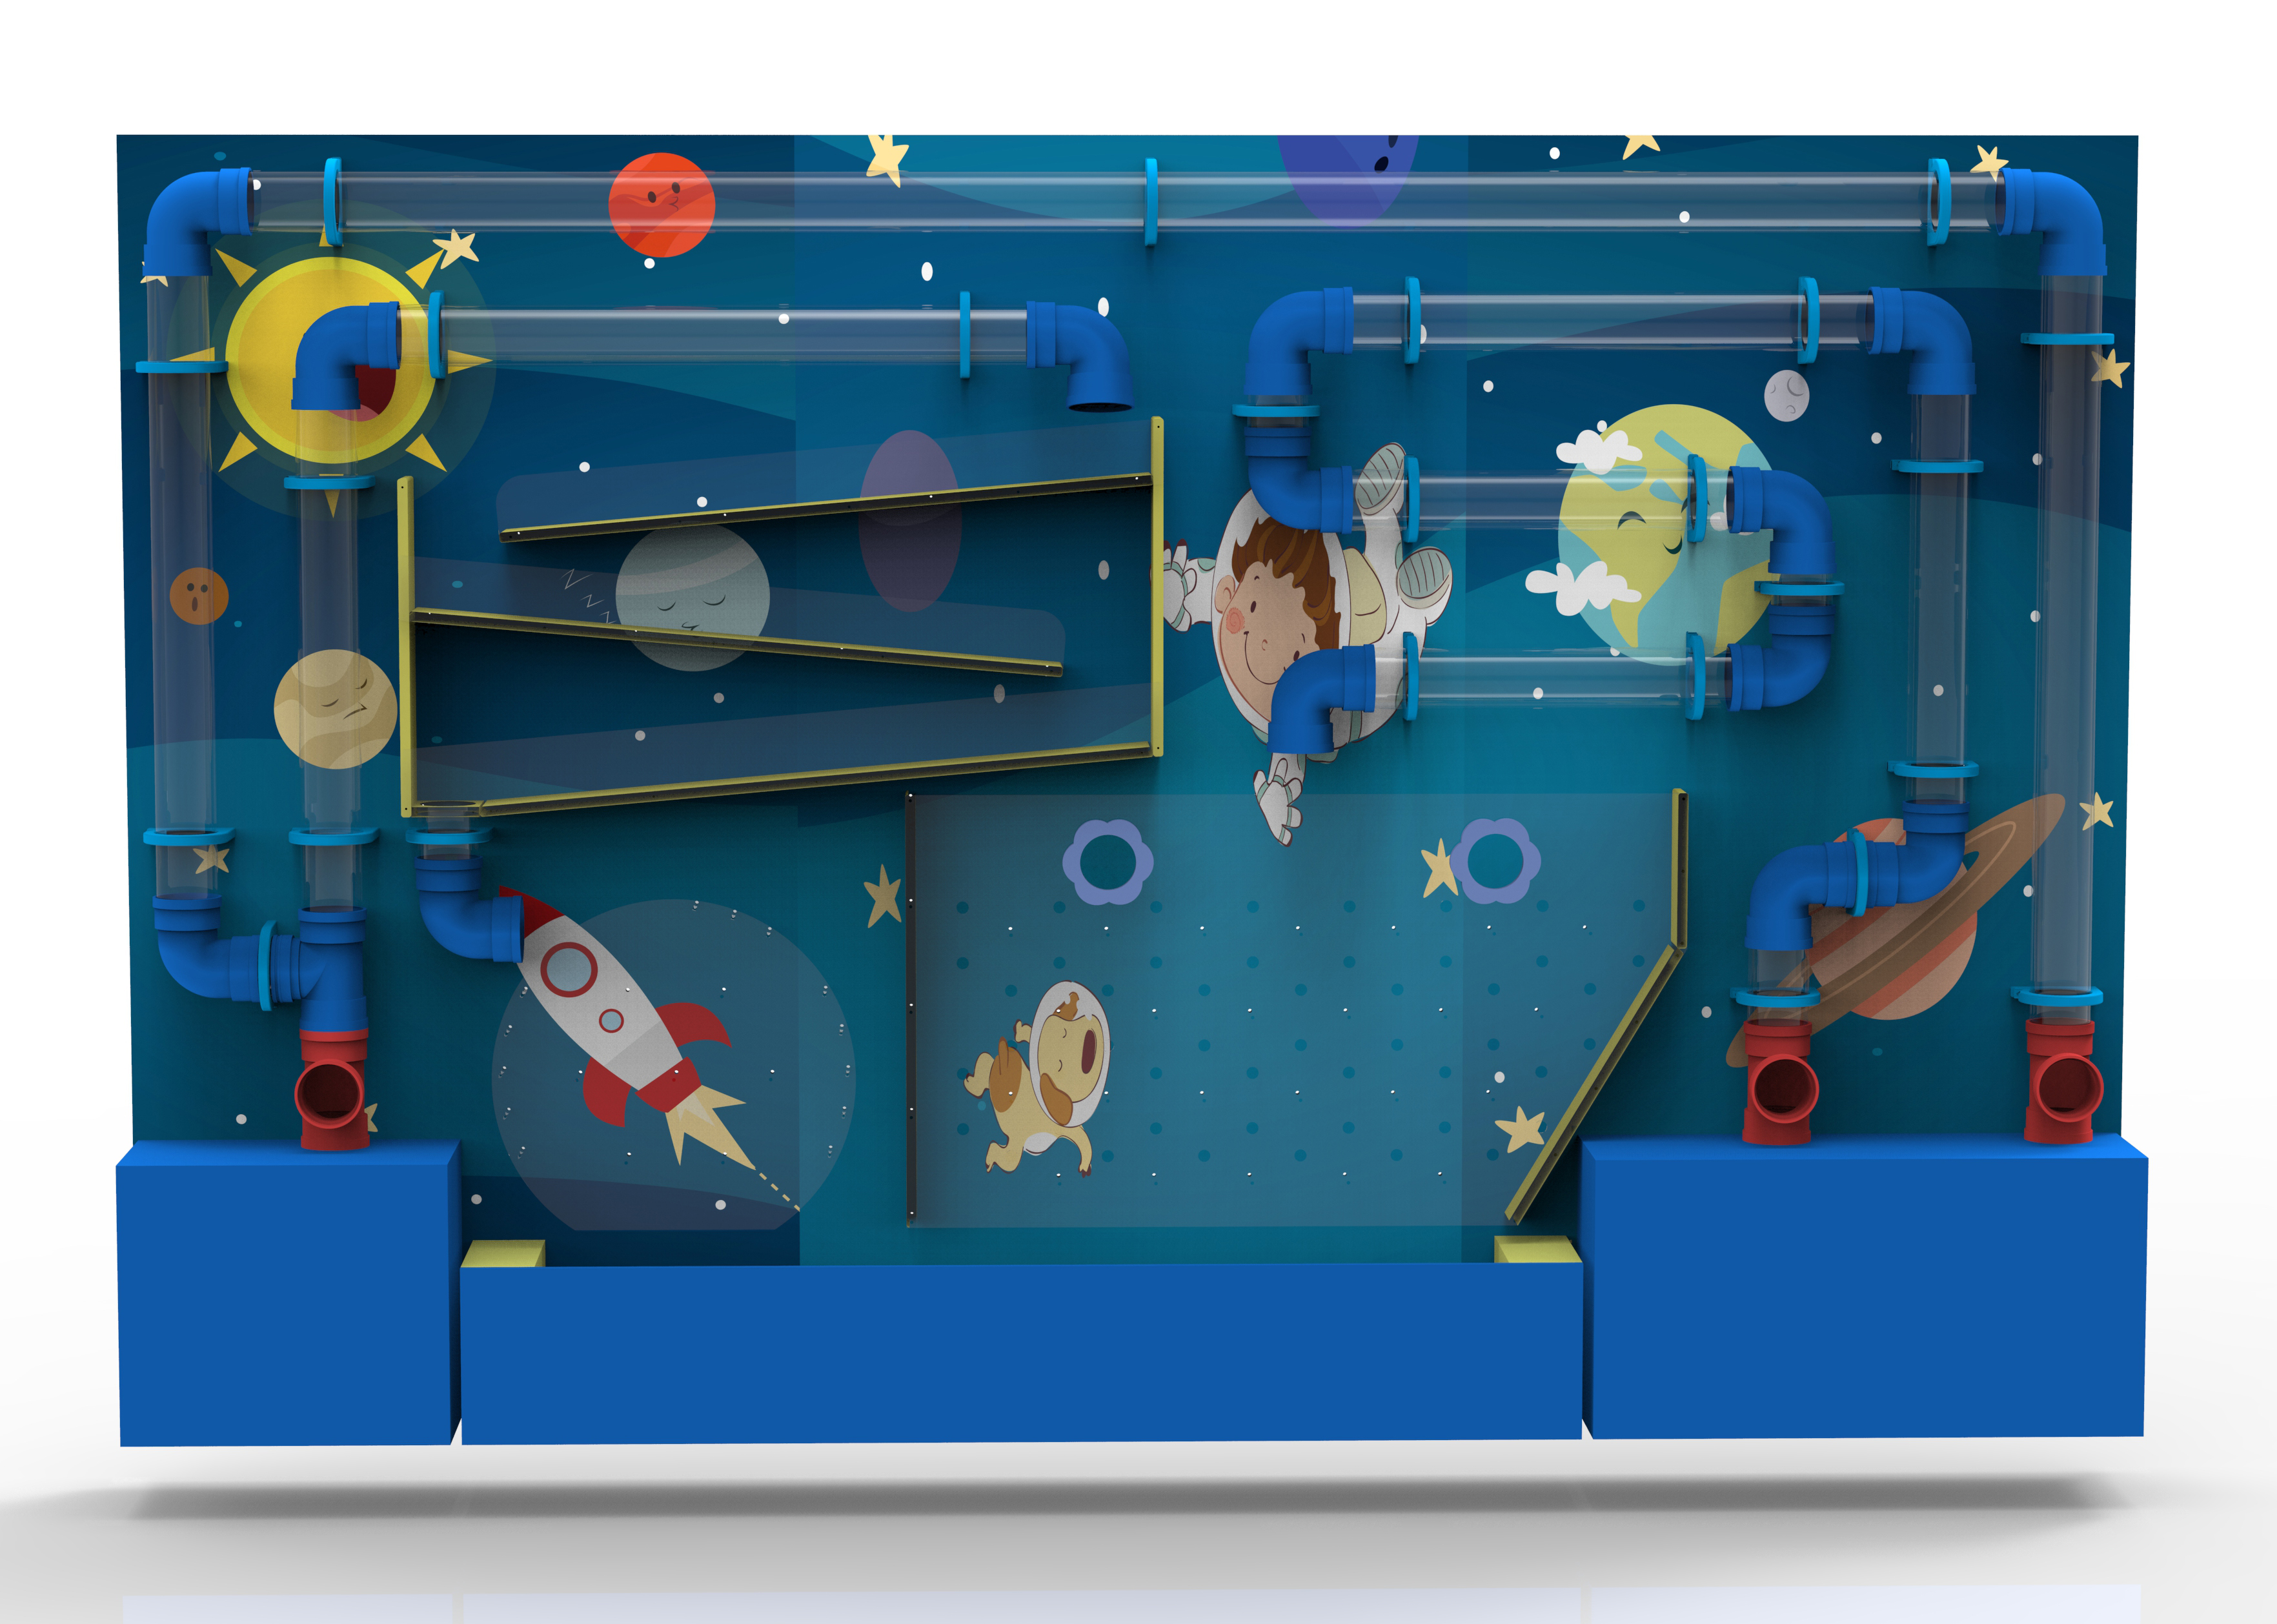 indoor playground playing ocean ball game naughty castle